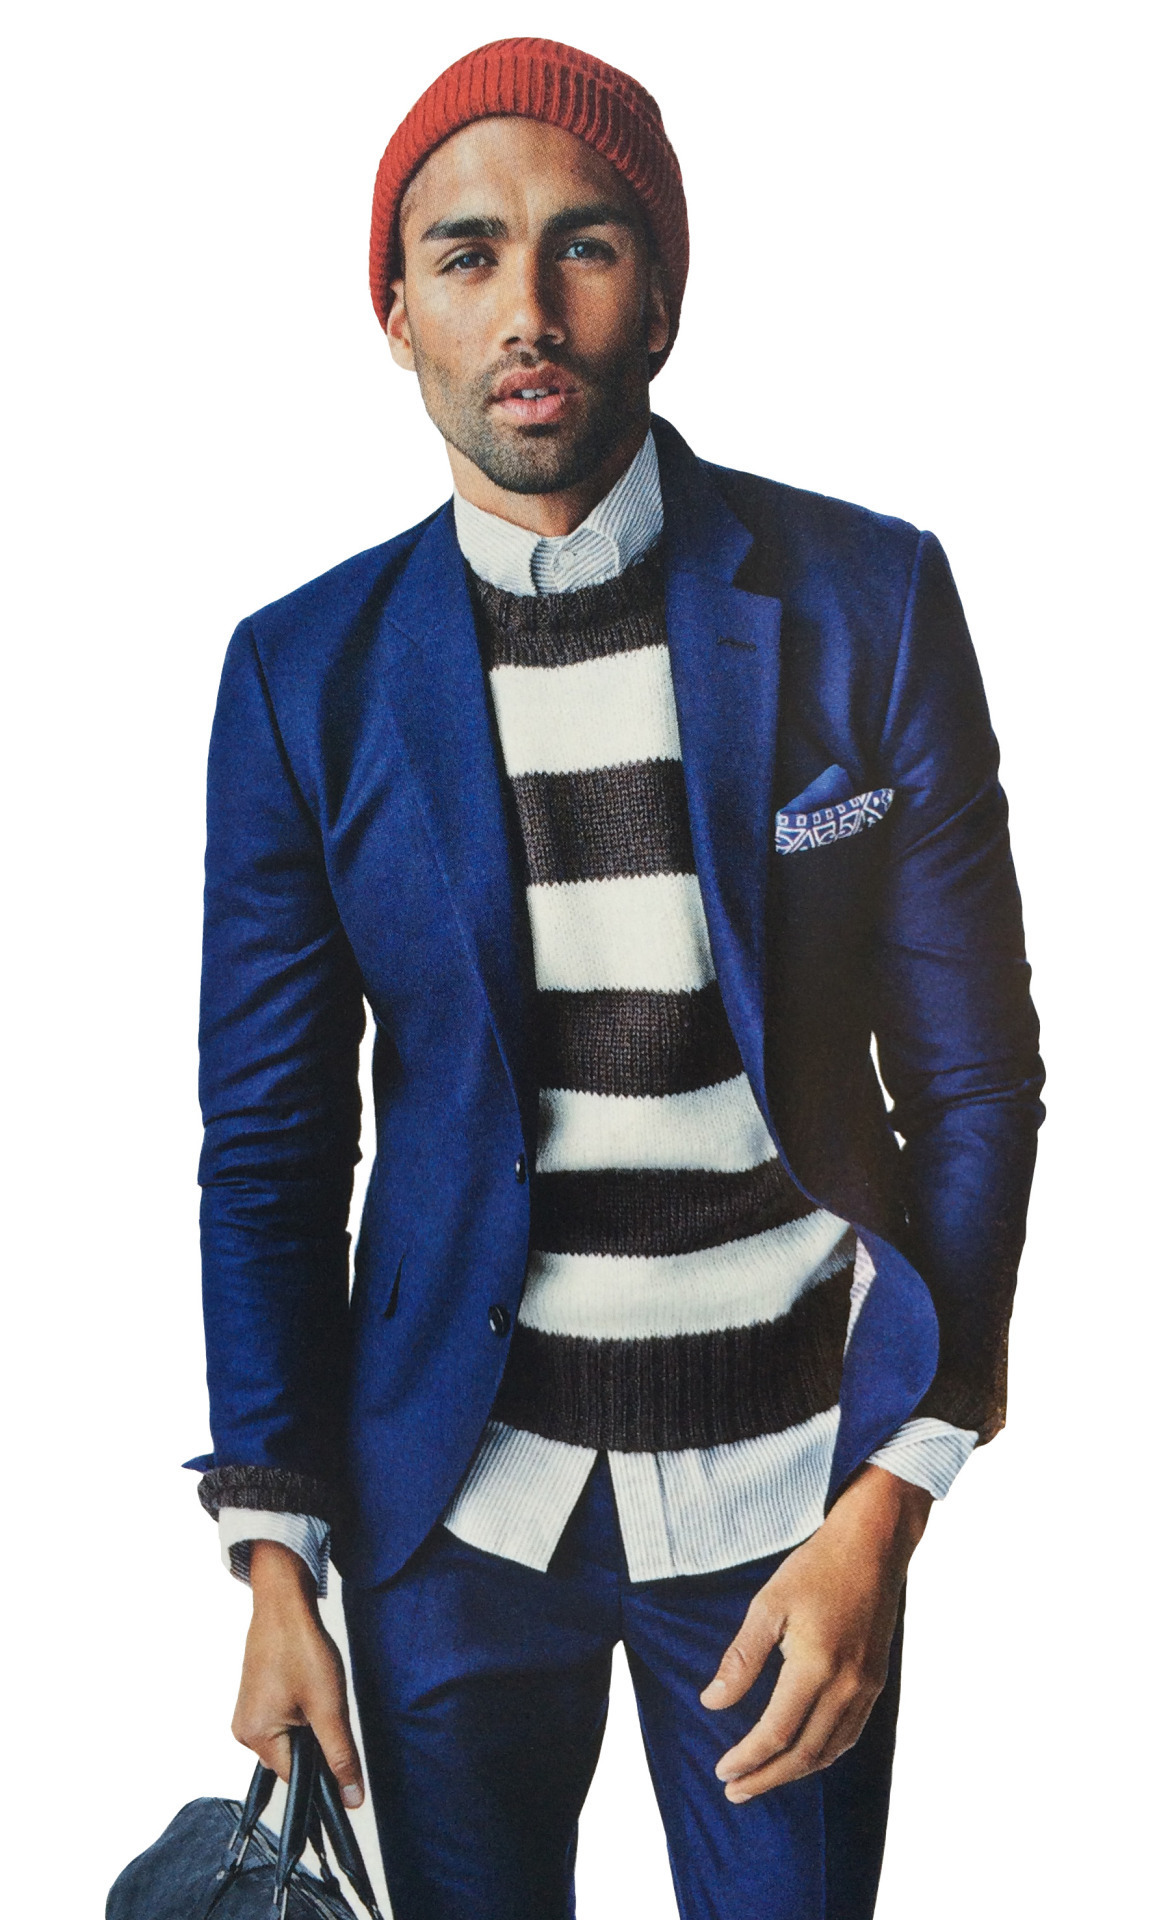 Men's Blue Wool Suit, White and Black Horizontal Striped Crew-neck ...